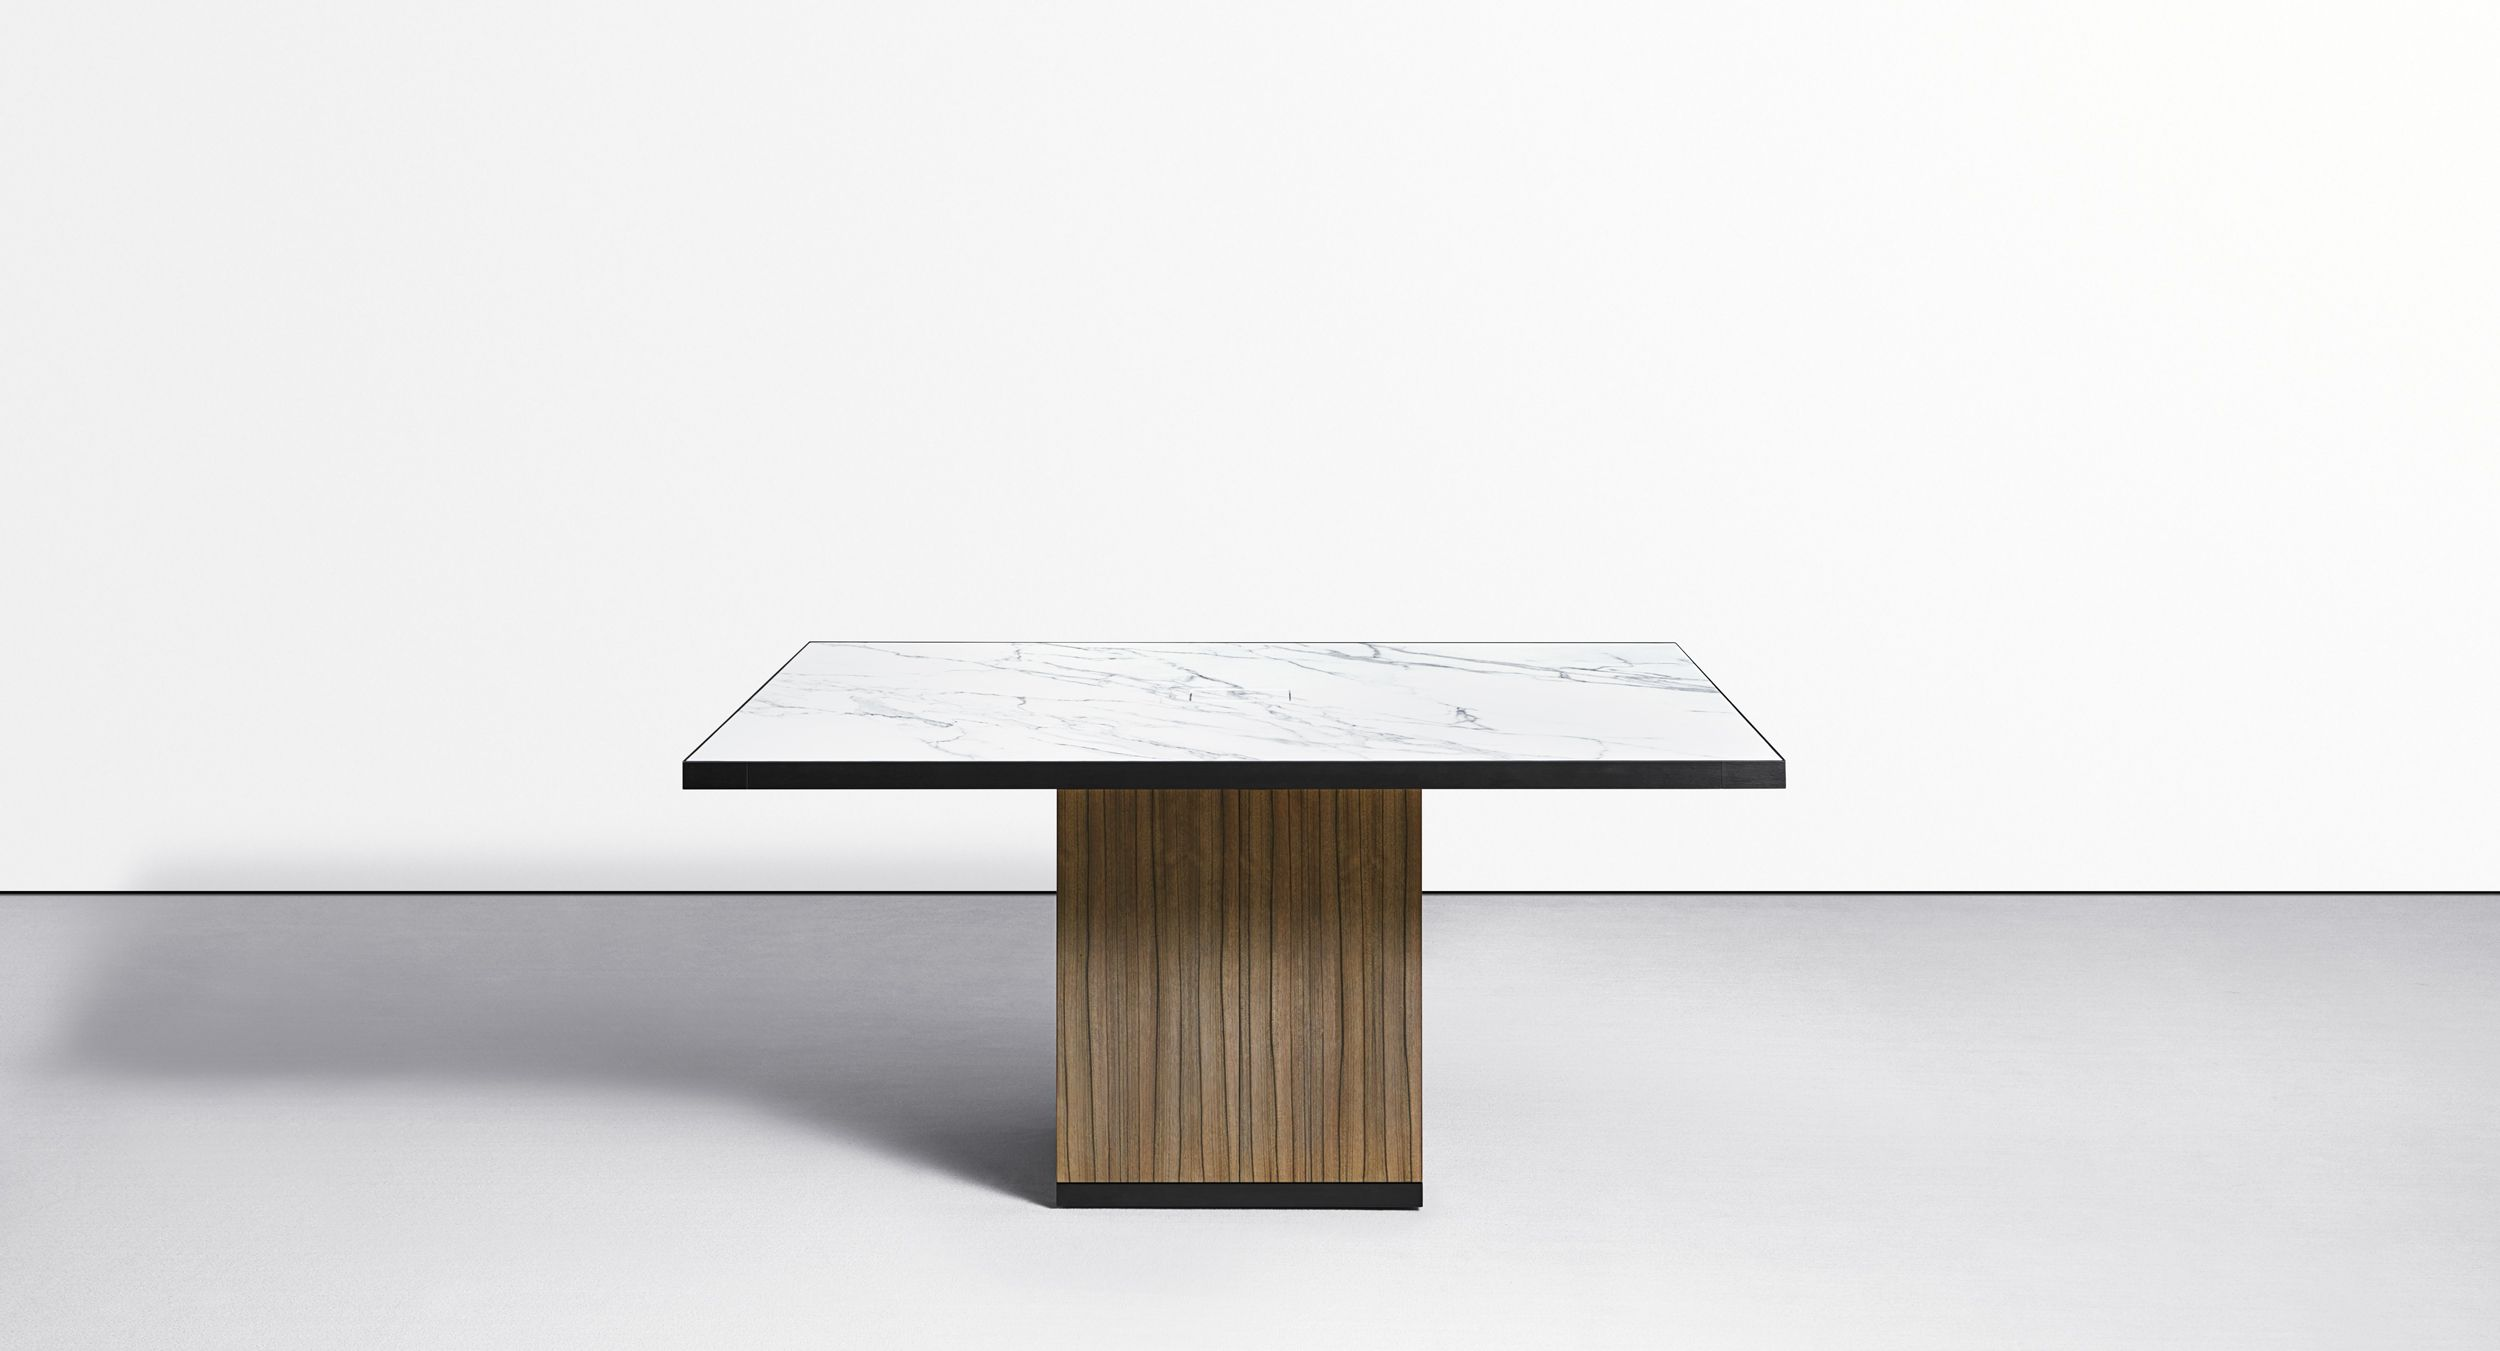 Motus² is the ultimate executive-level reconfigurable table.